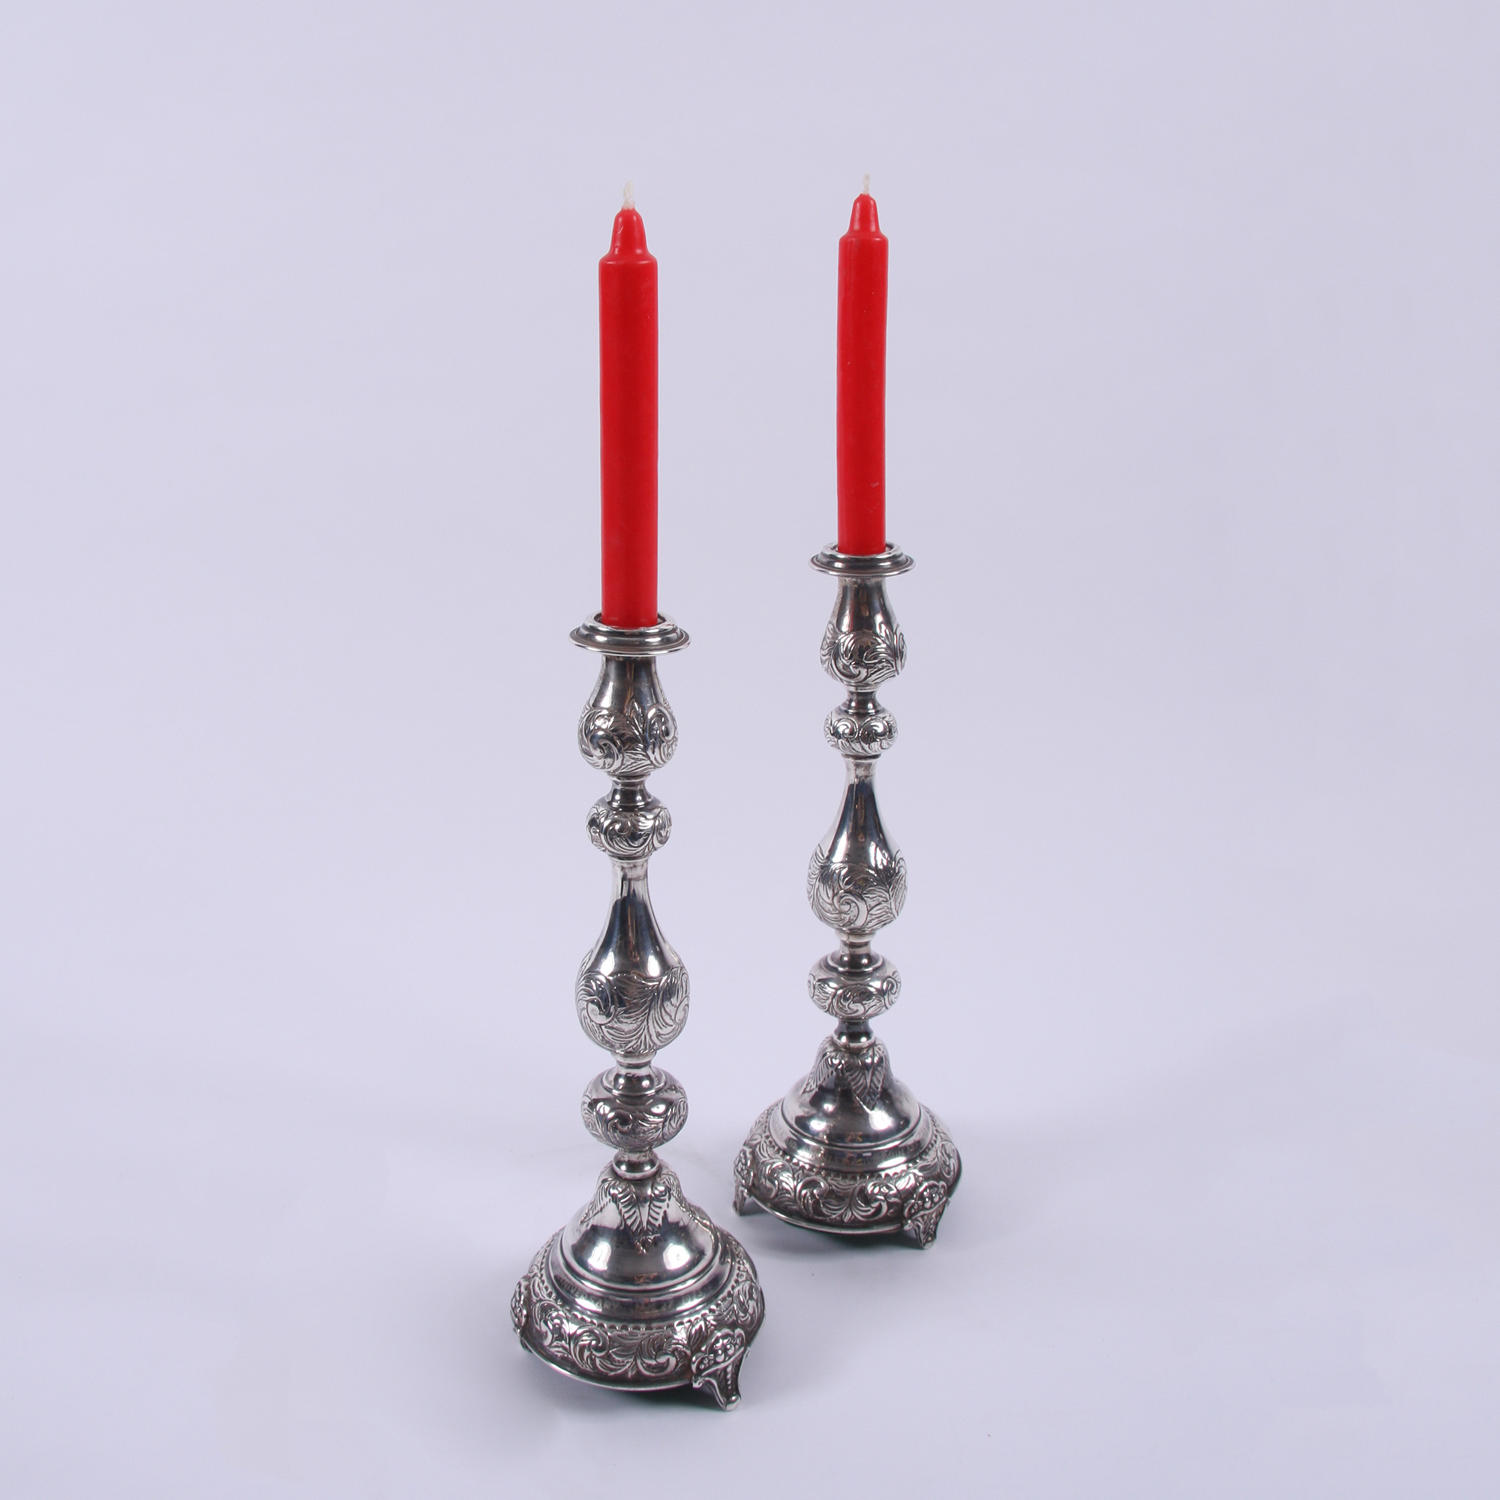 Early C20th Silver Pair of Candlesticks